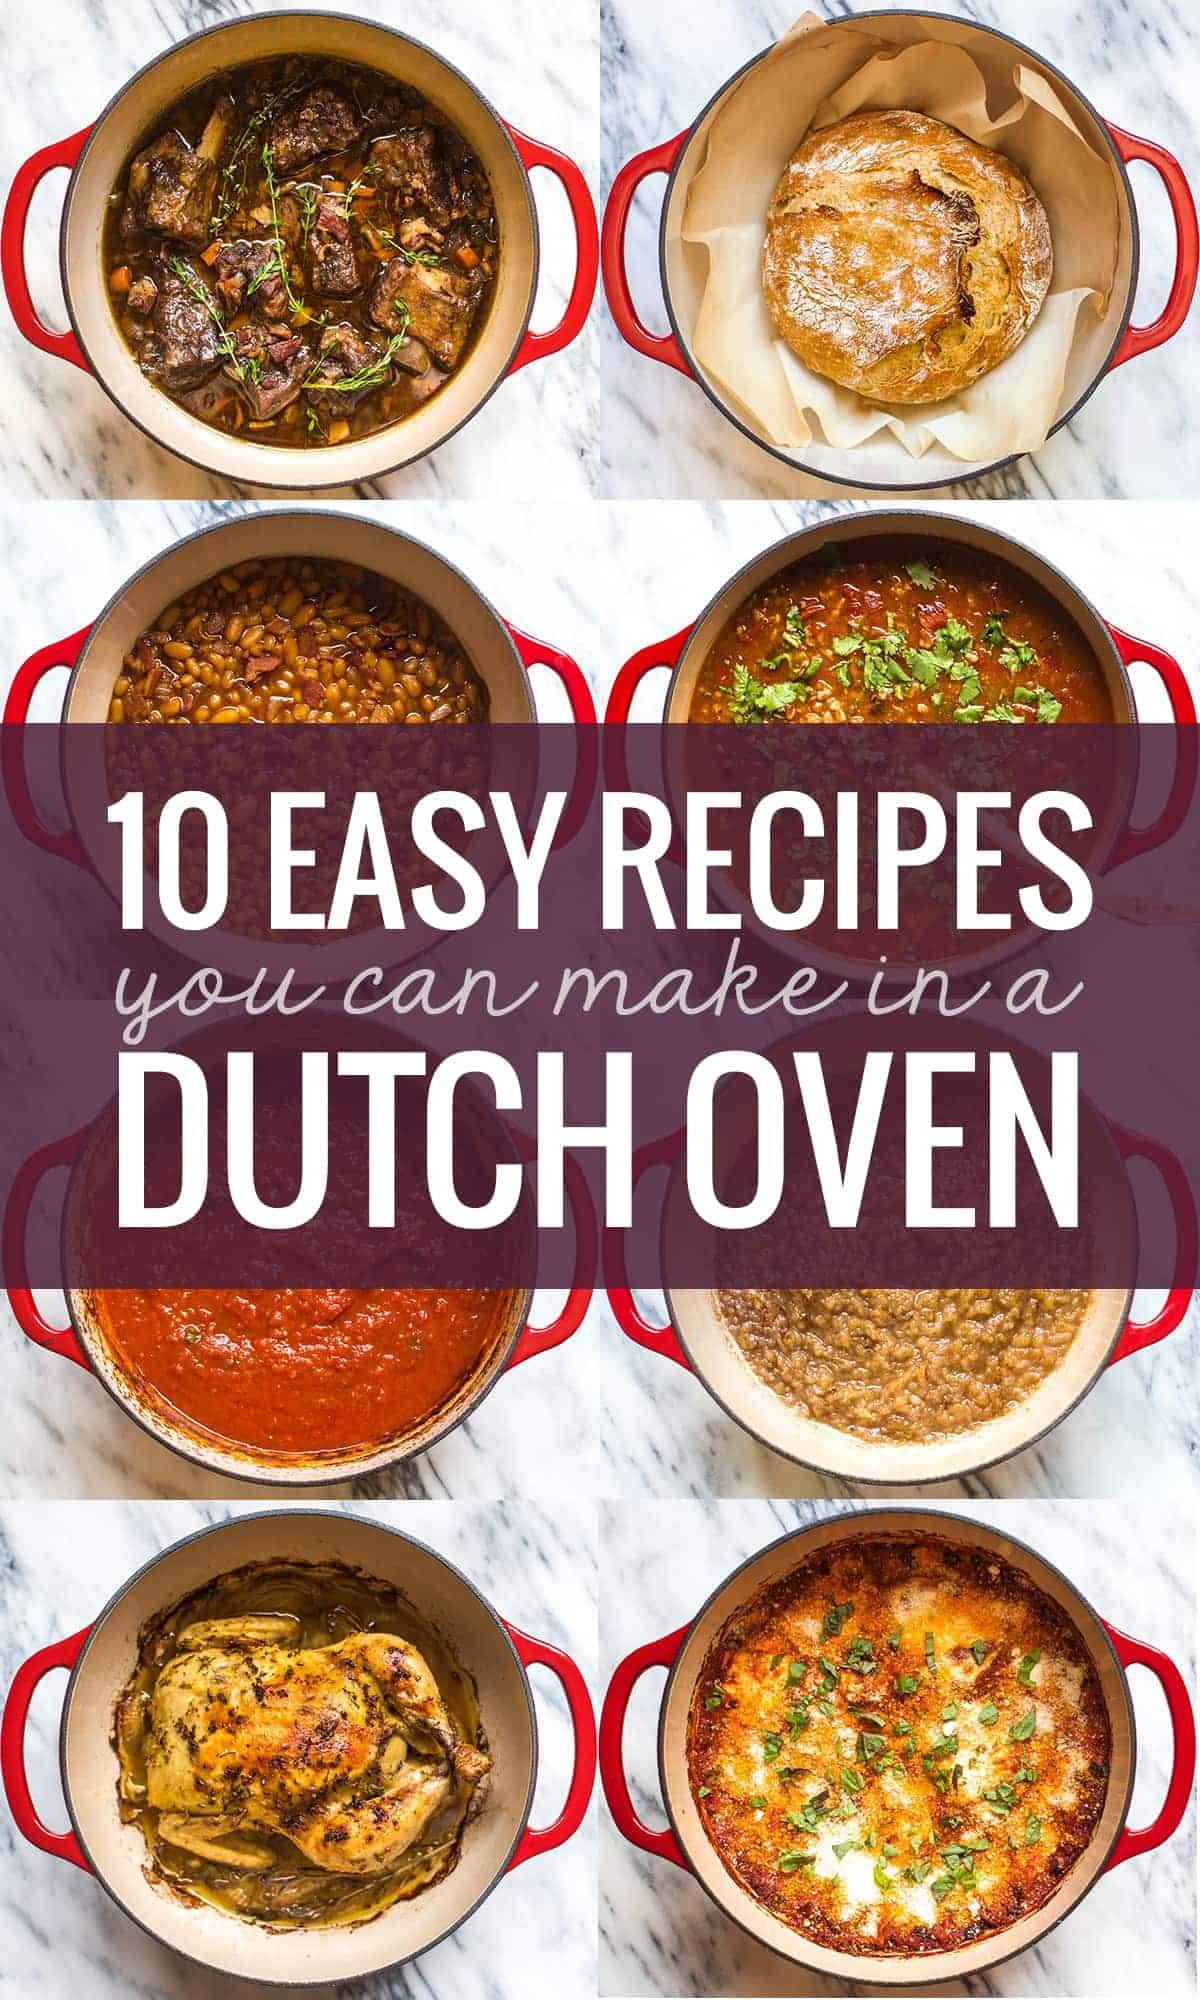 Since a Dutch oven can go seamlessly from stove to oven, it's the ultimate choice when making any sort of braised meat that's browned on the stovetop and then cooked in the oven, slowly, for hours. That will give you plenty of time to make the mashed potatoes, because you know you'll need them.